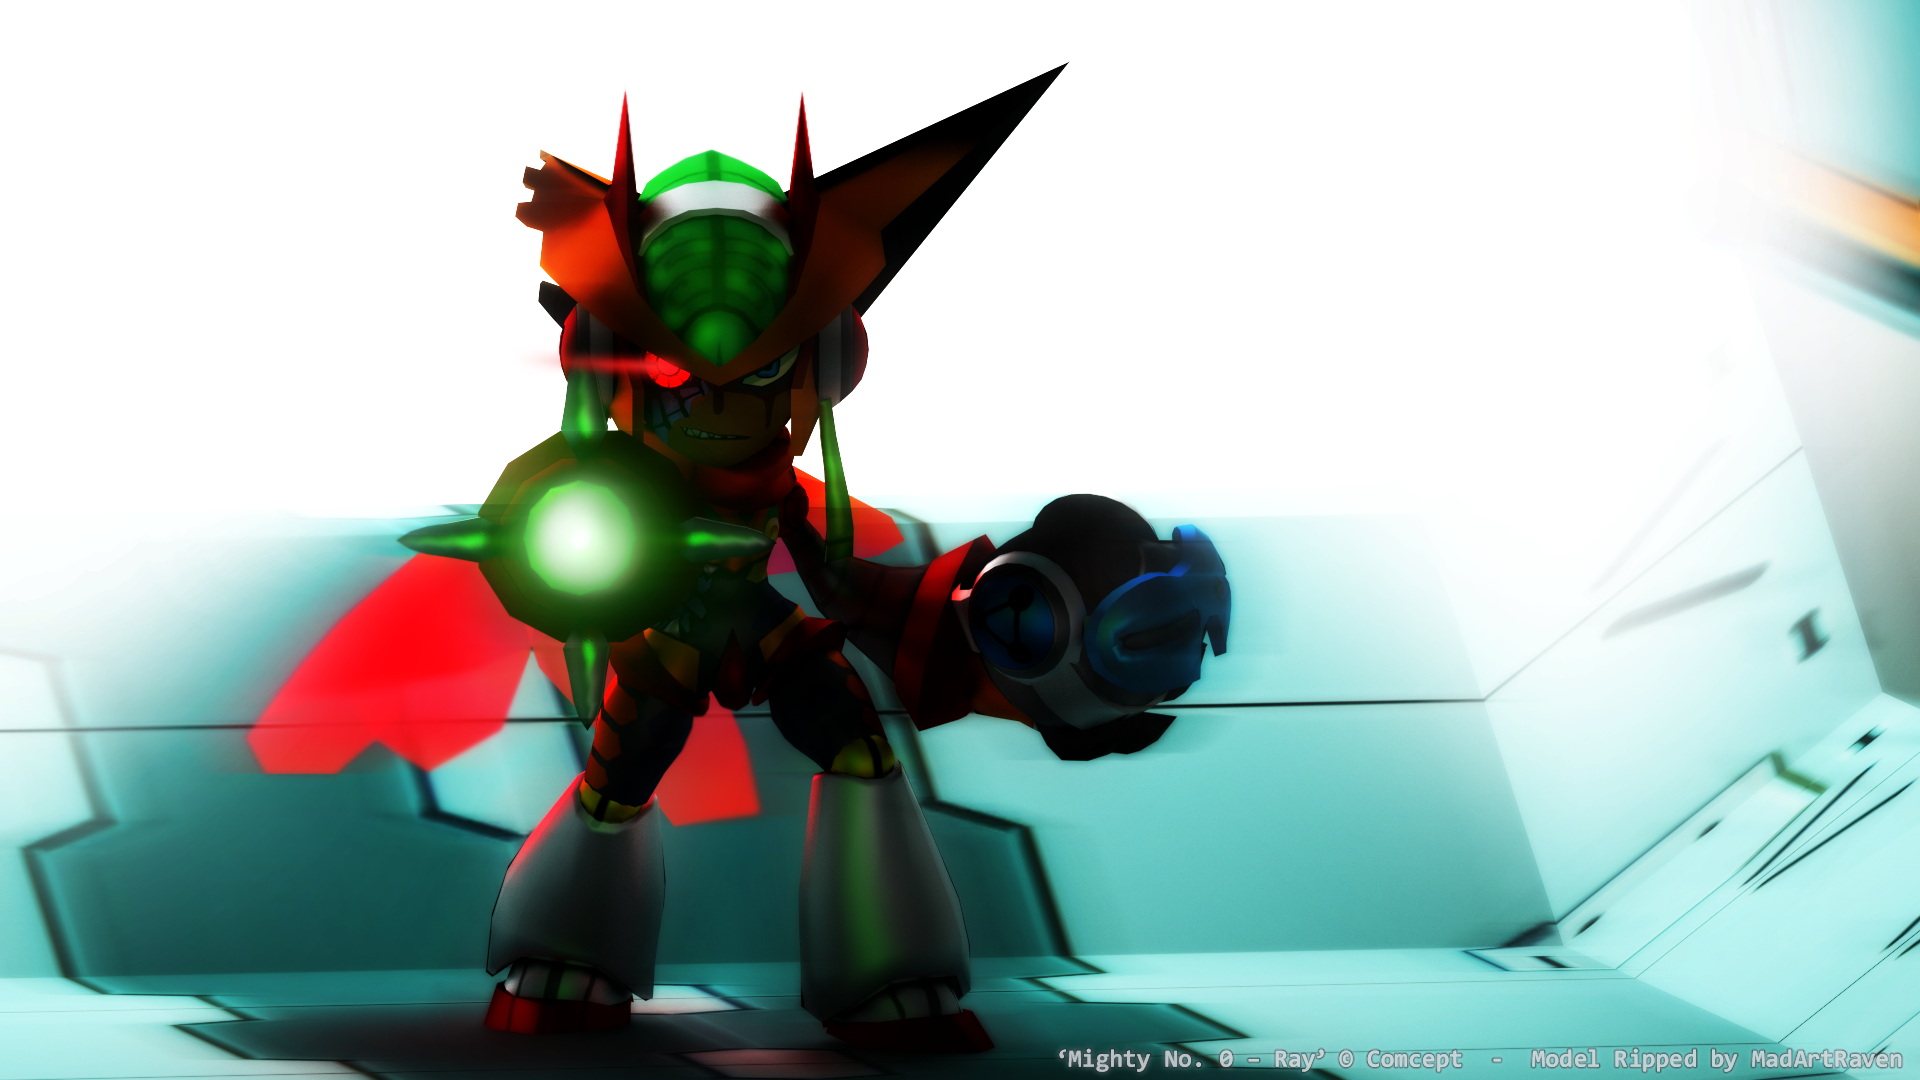 mighty_no__9___ray_s_revenge_by_madartraven-d9b8o3a.png